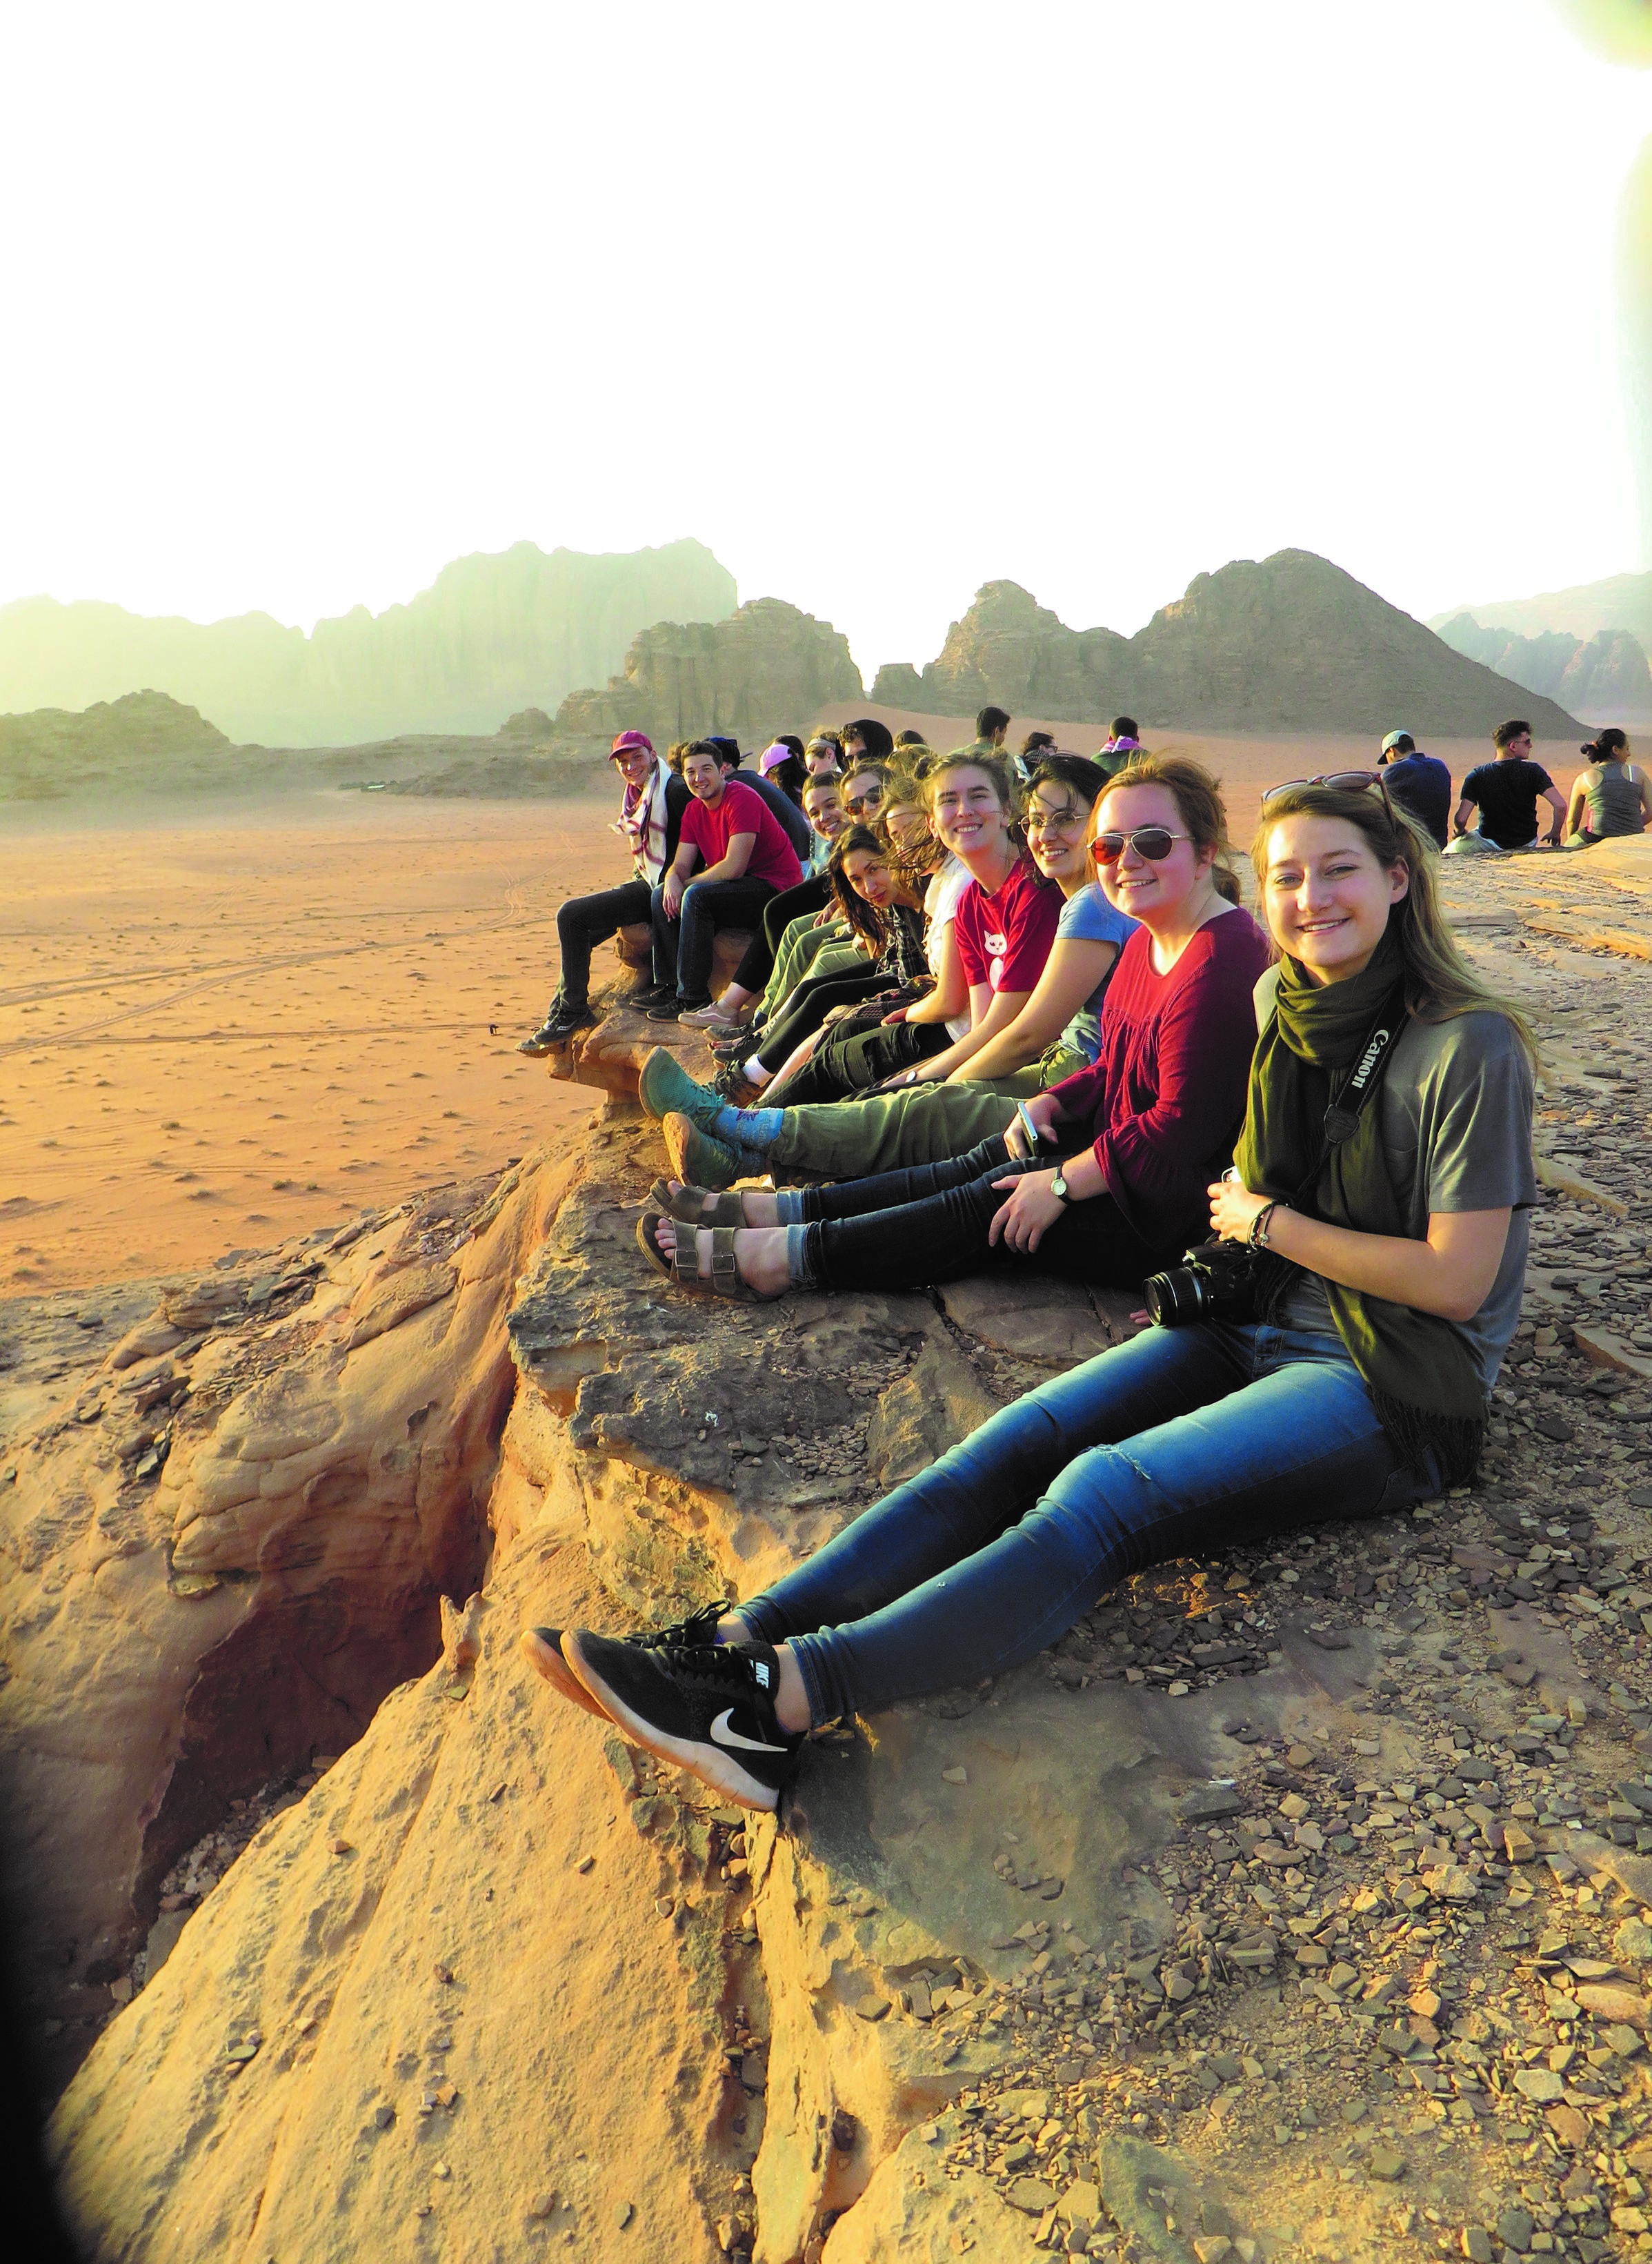 Summer Program - Group Travel | Pre-College at CET Jordan: Jordanian Youth Culture and Civic Engagement